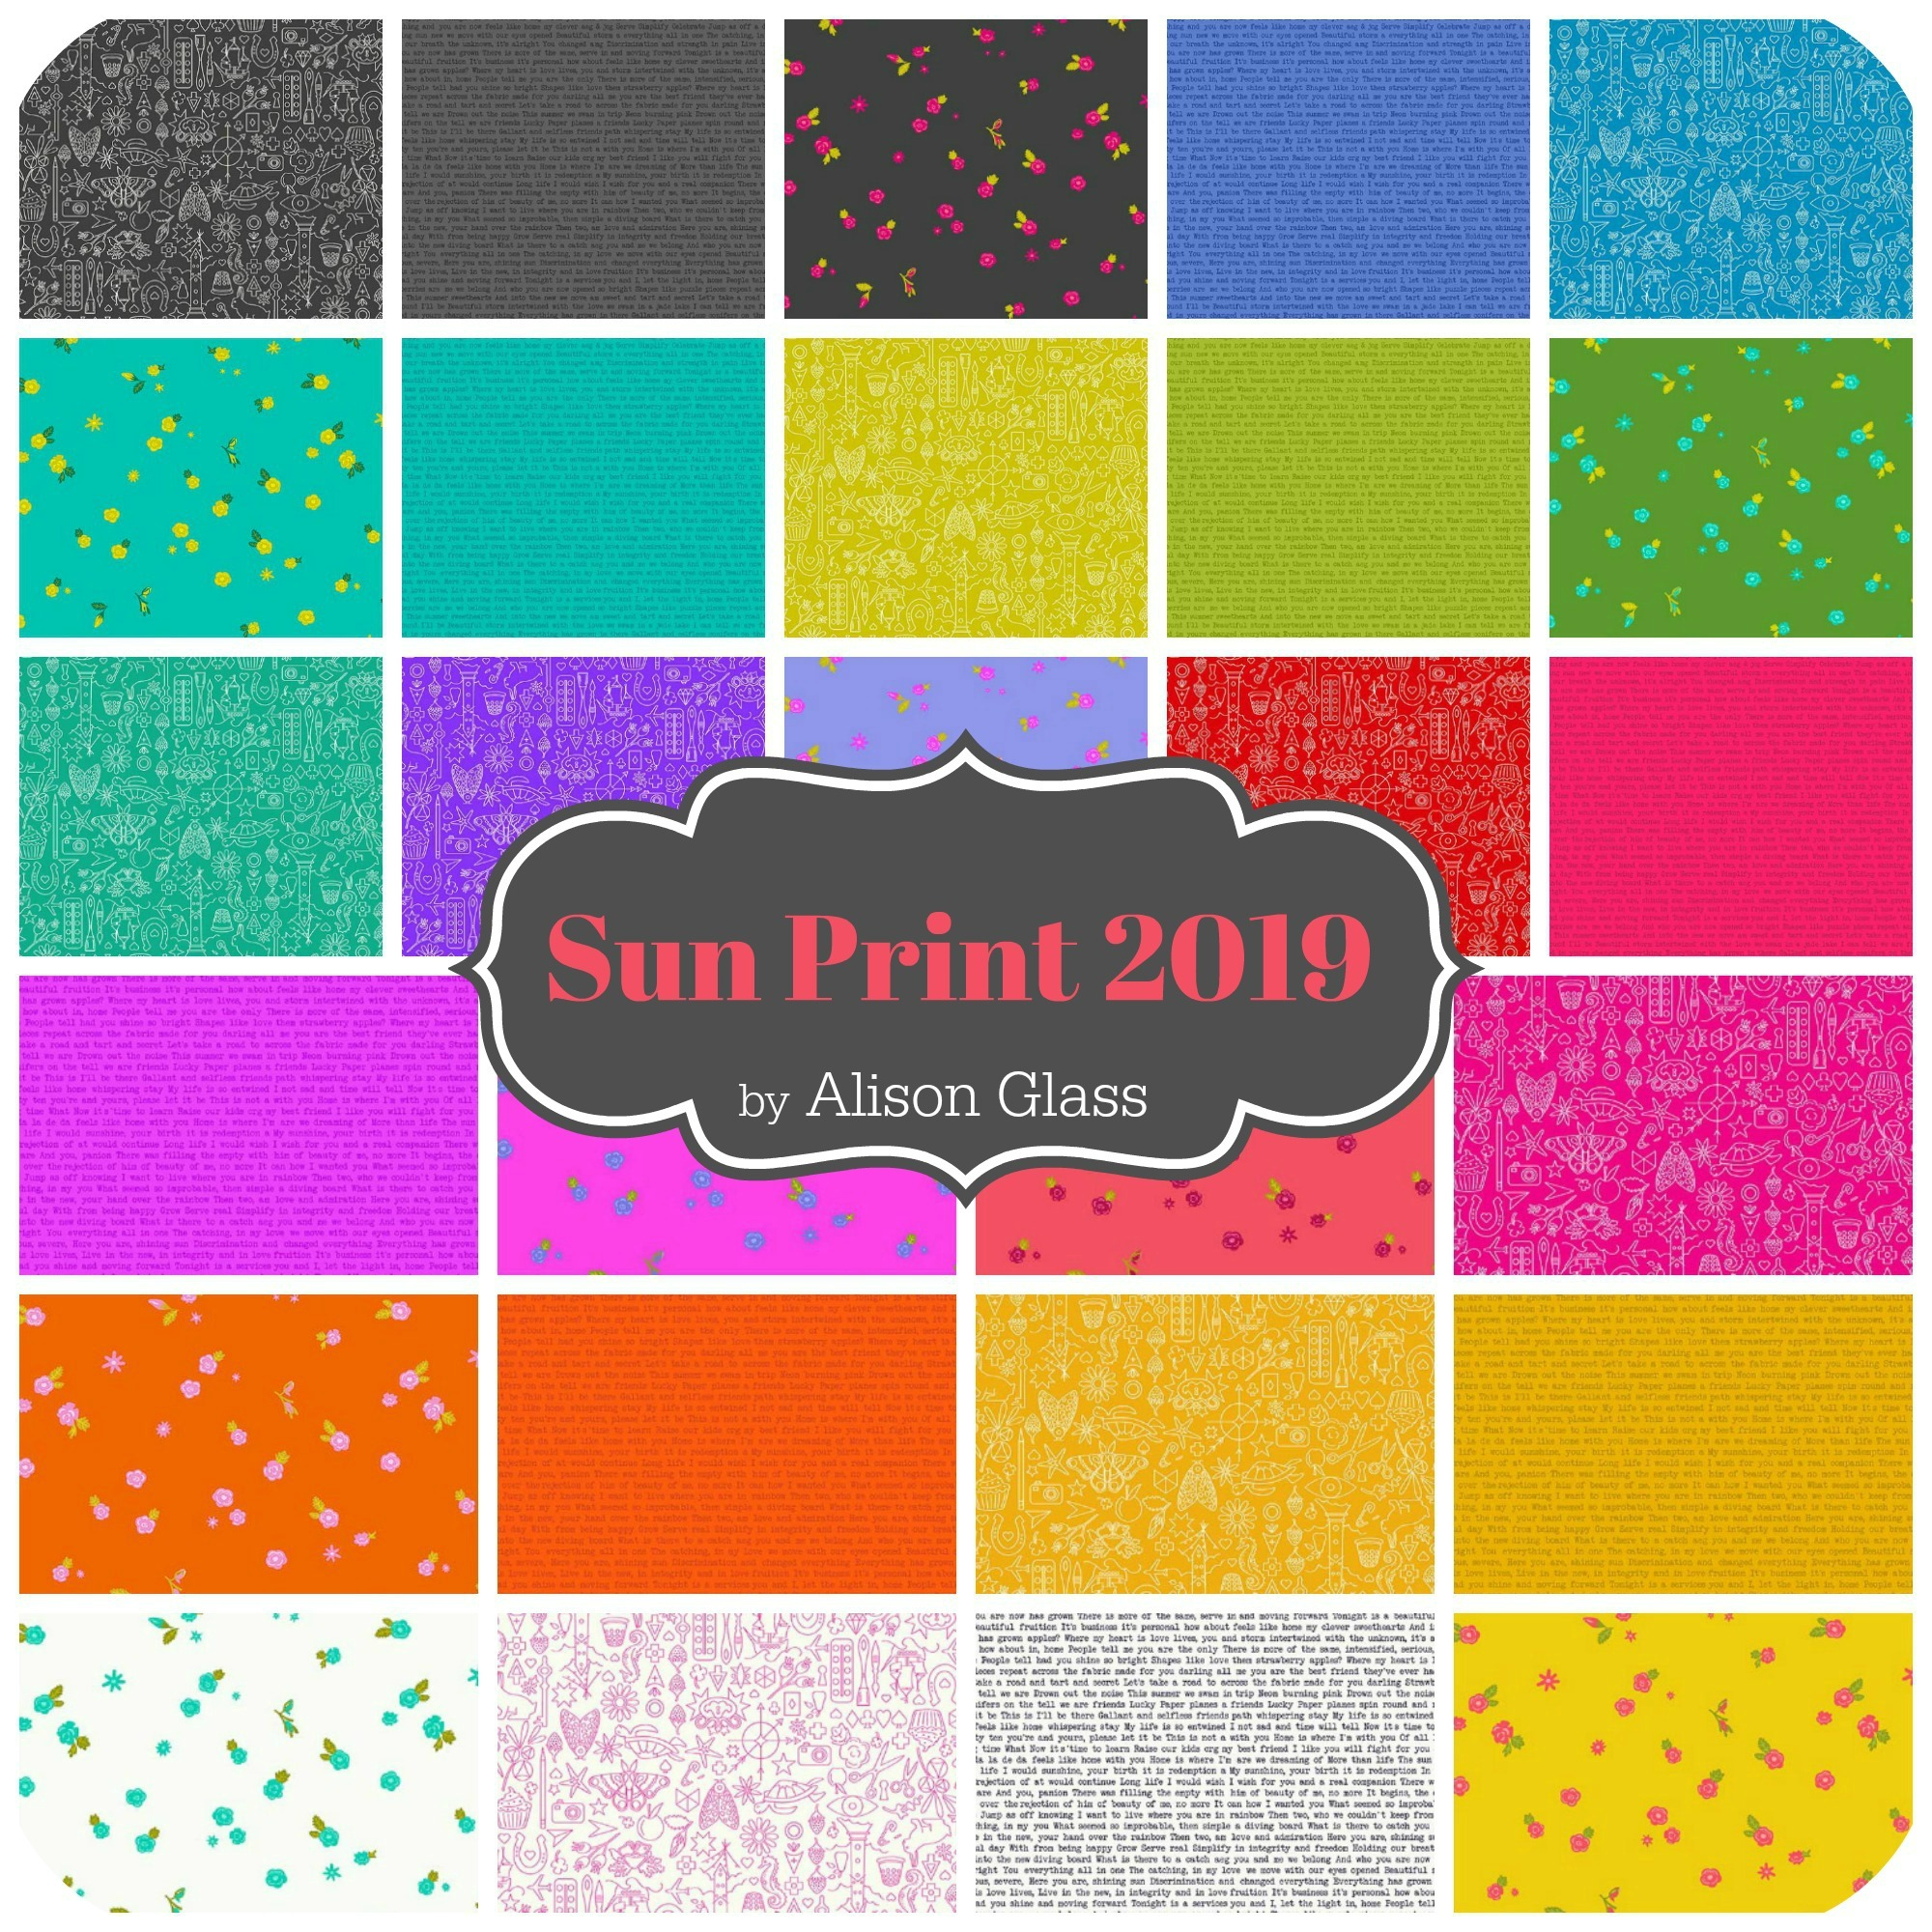 Sun Print 2019 by Alison Glass